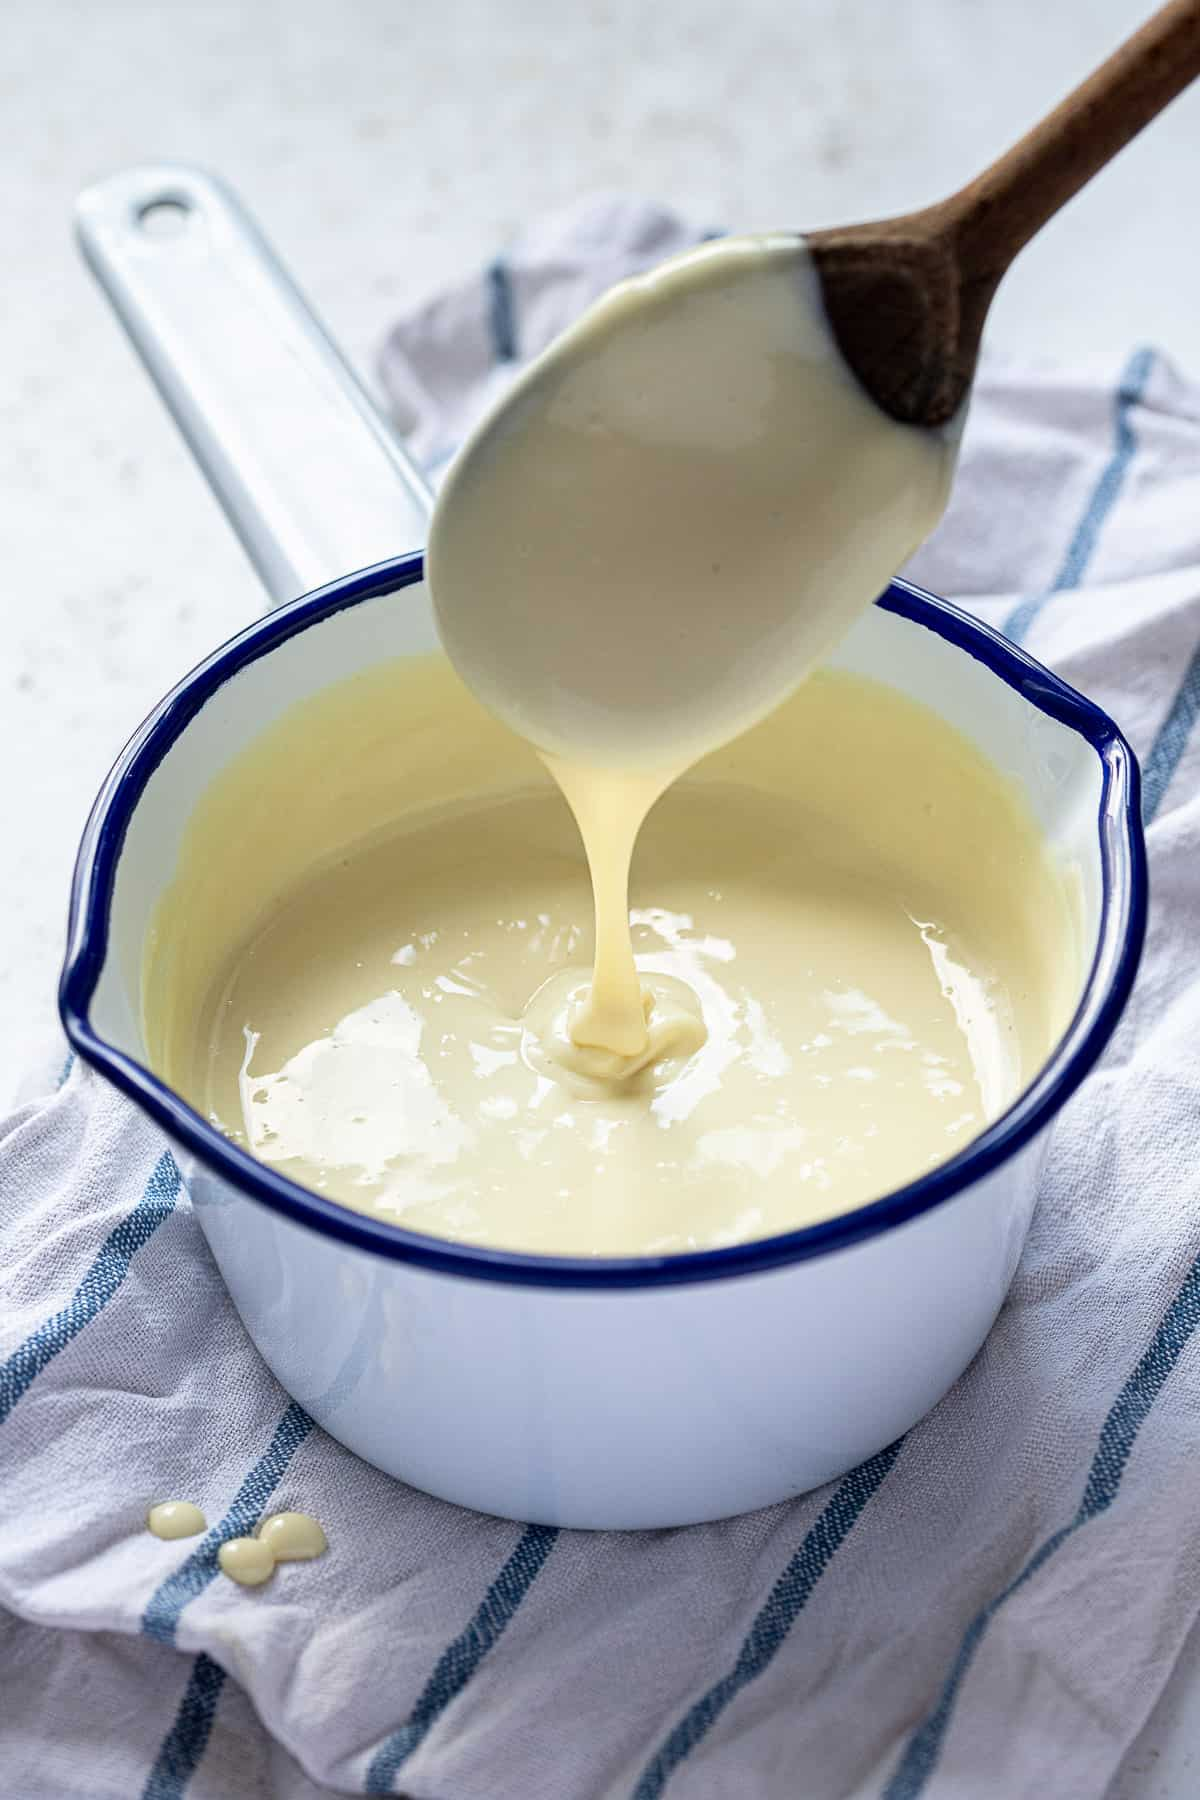 Vegan custard being drizzled off a wooden spoon into a pan.